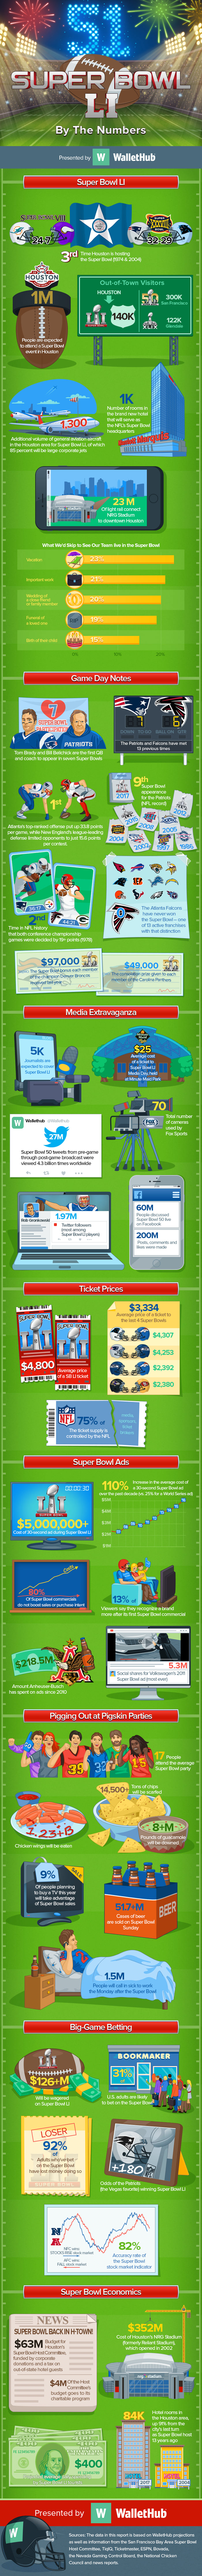 Super-Bowl-LI-By-The-Numbers-v7